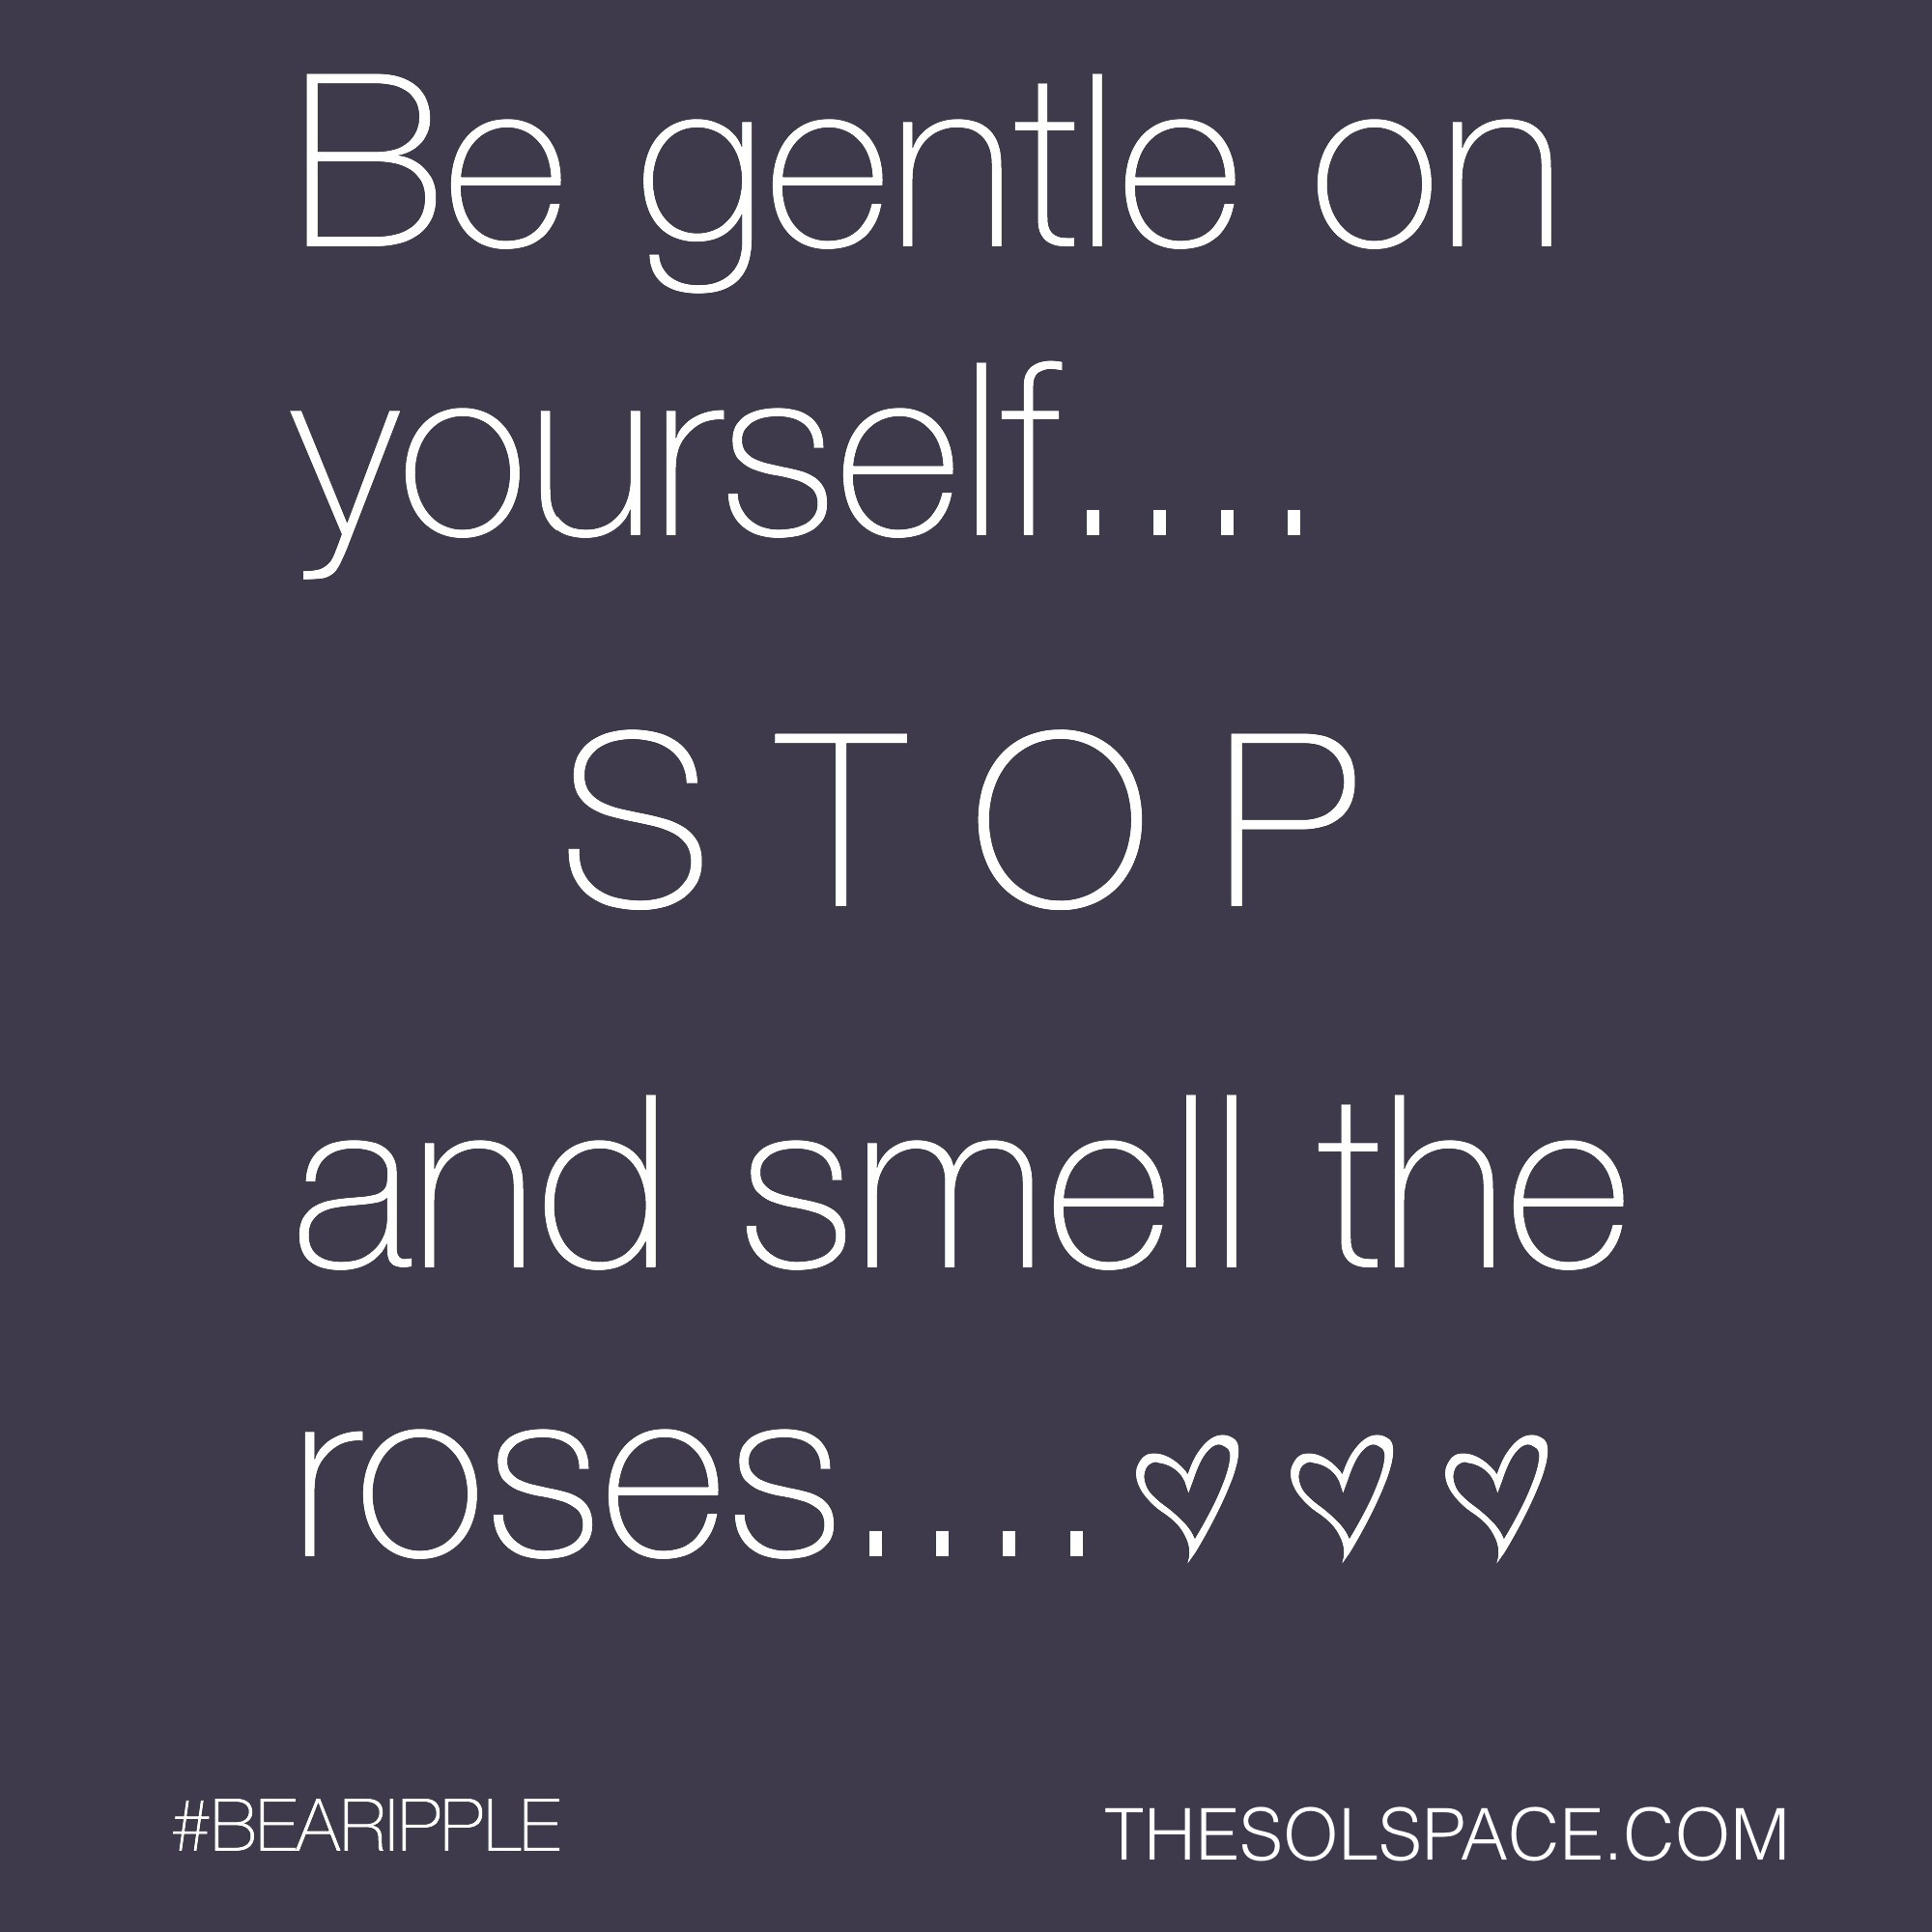 #BeARipple..Be gentle on yourself..STOP and smell the roses... @theSOLspace